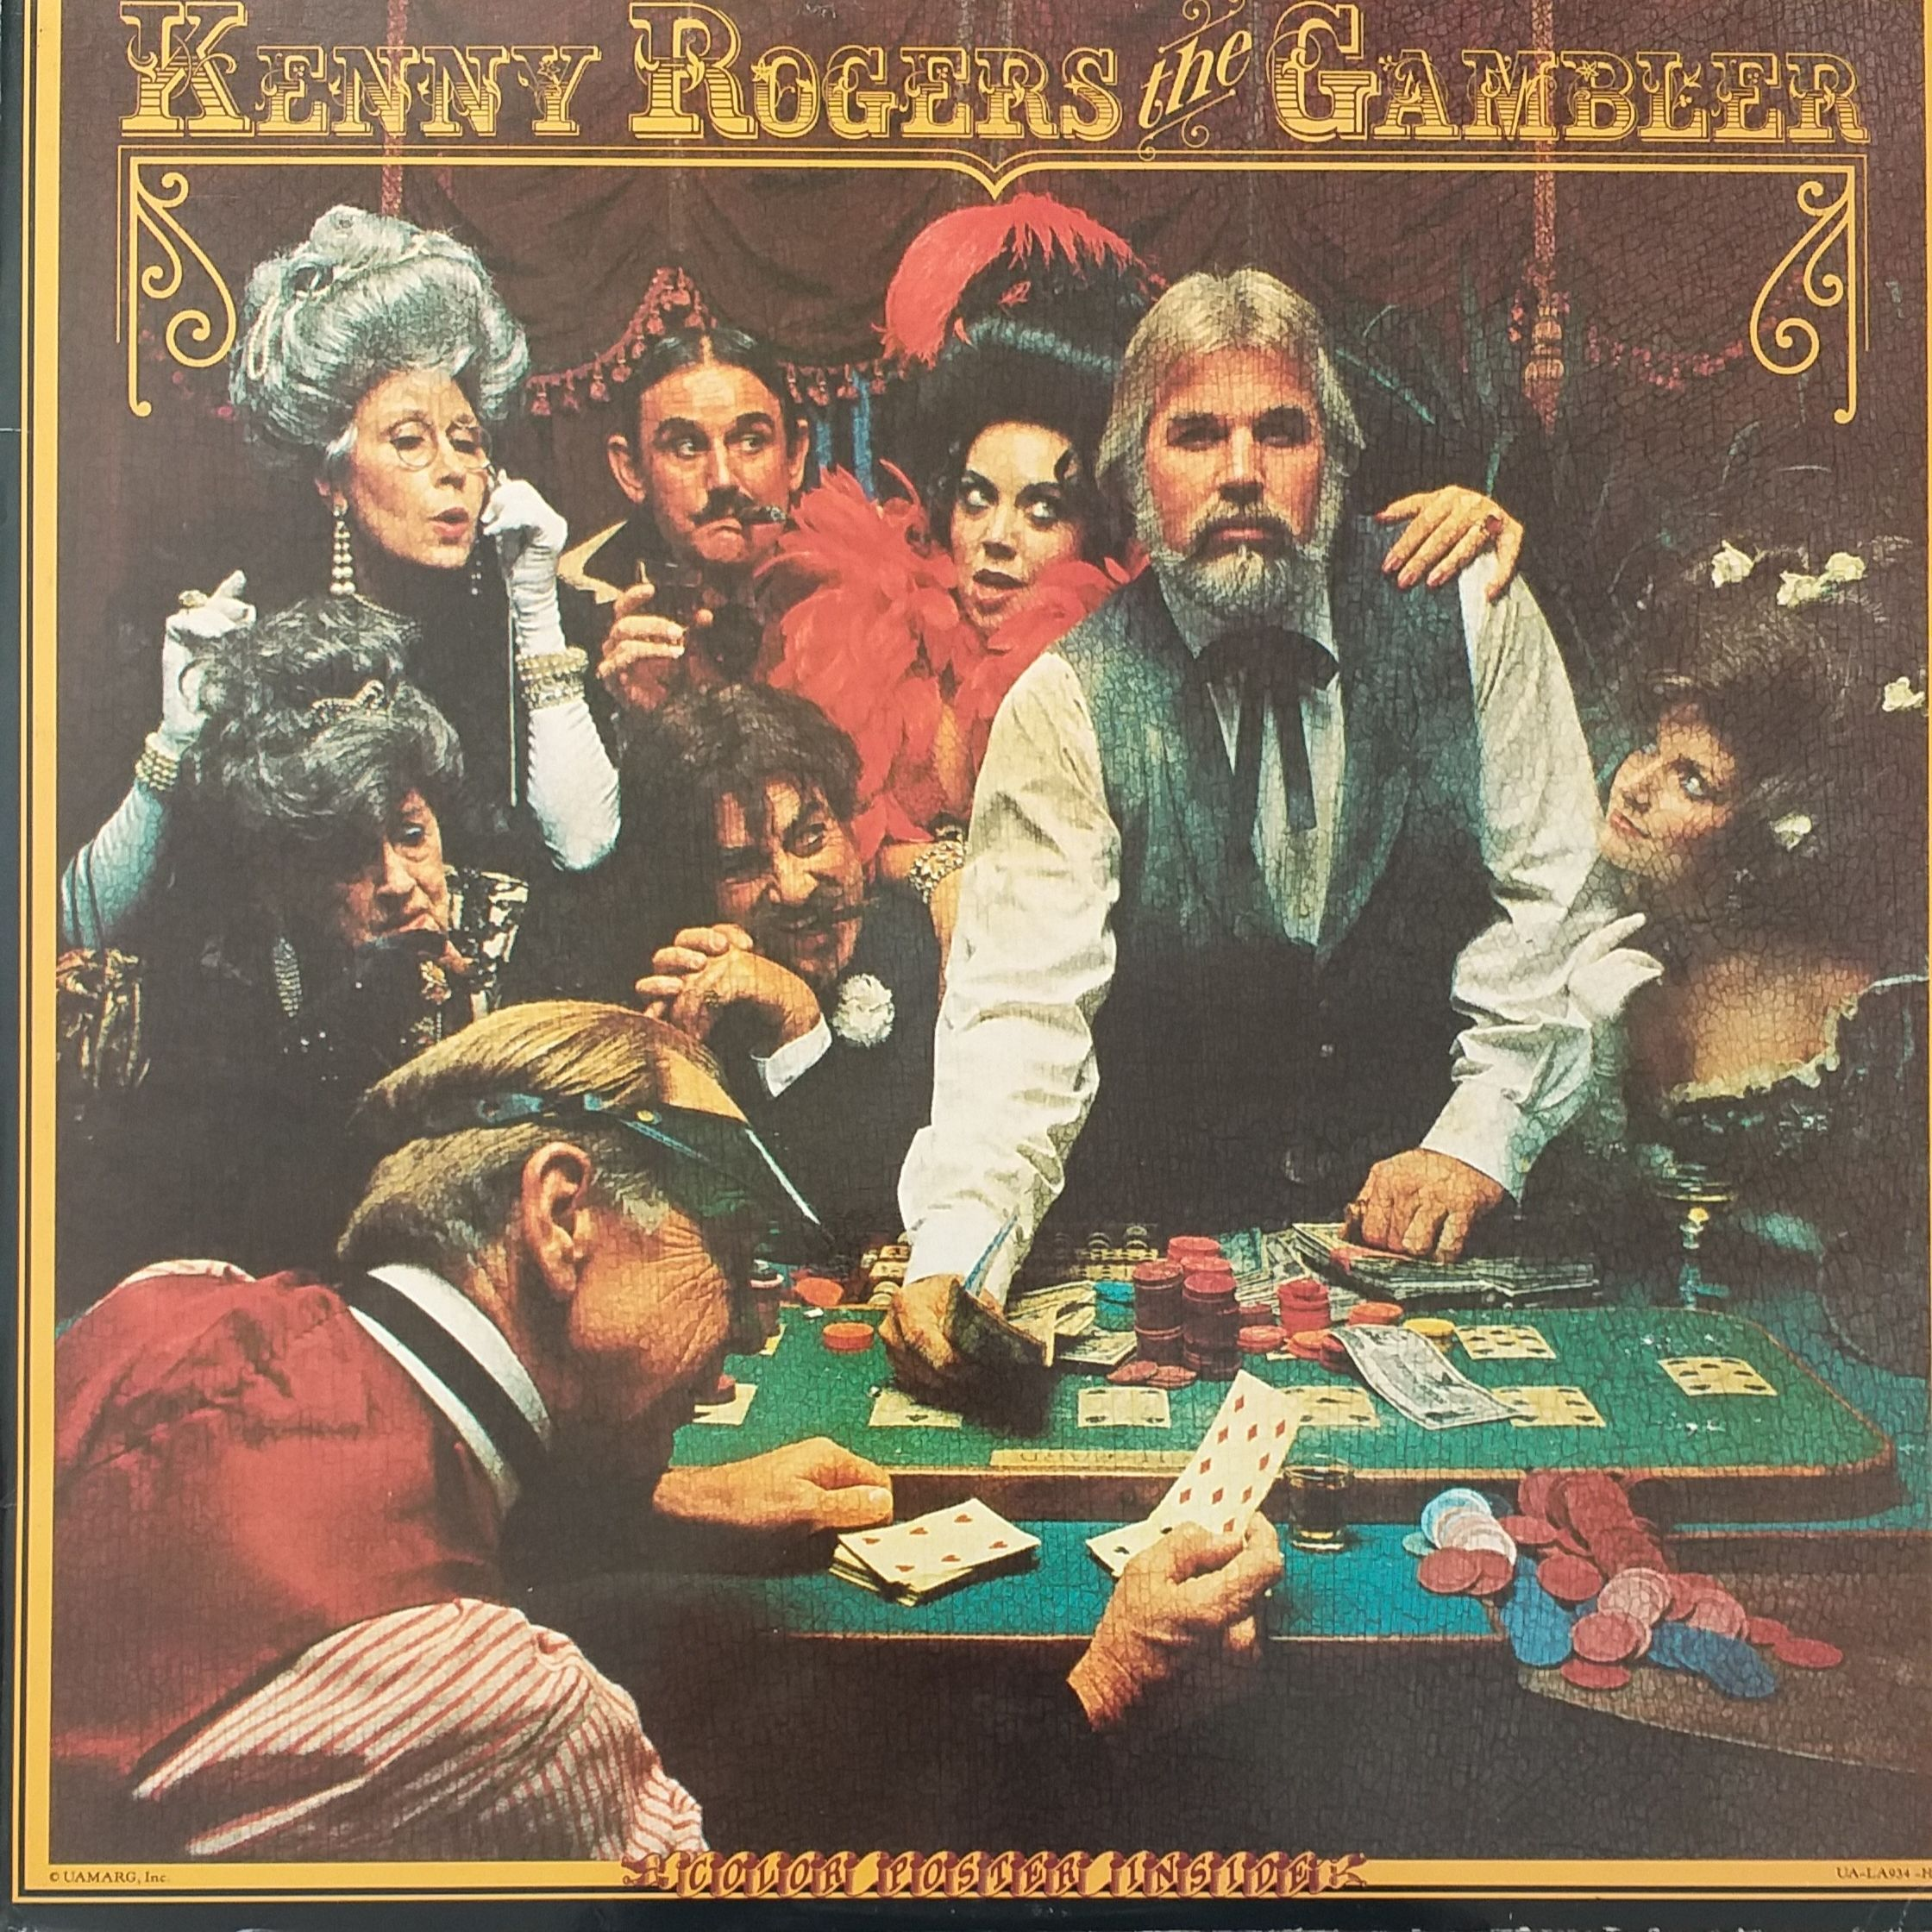 Kenny Rodgers The gambler LP undefined